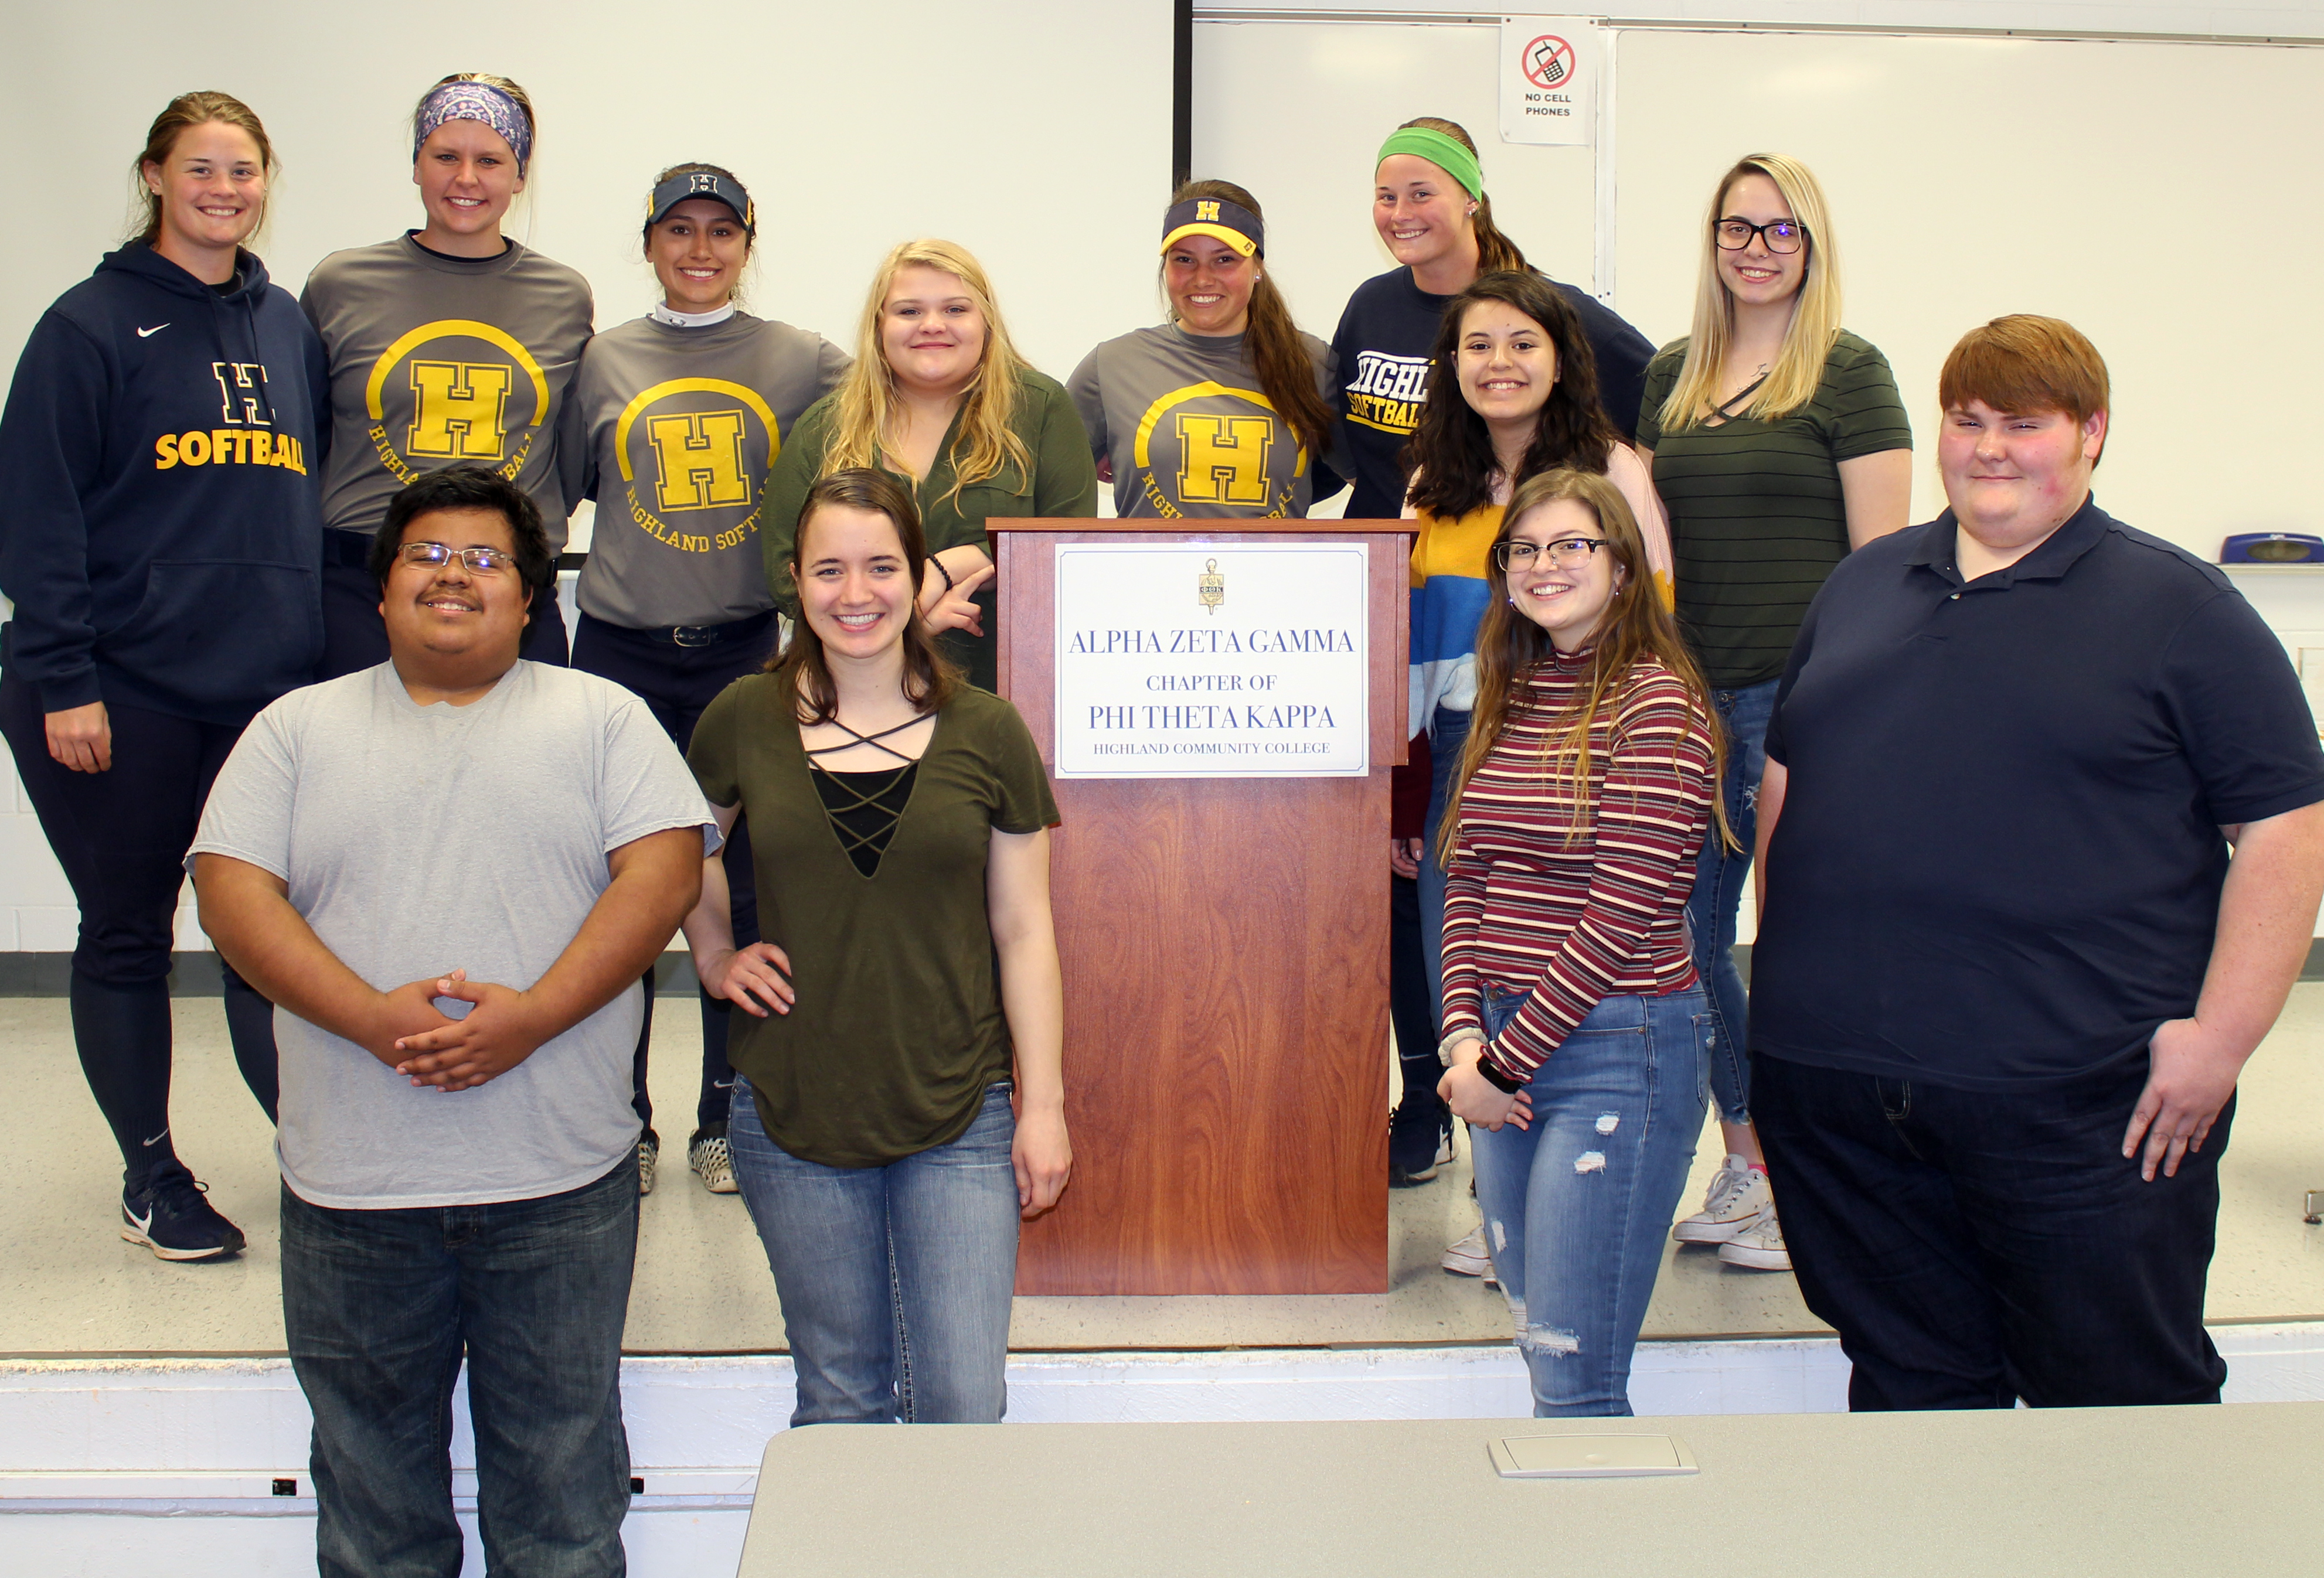 Highland Community College Students Join Collegiate Honor Society Group